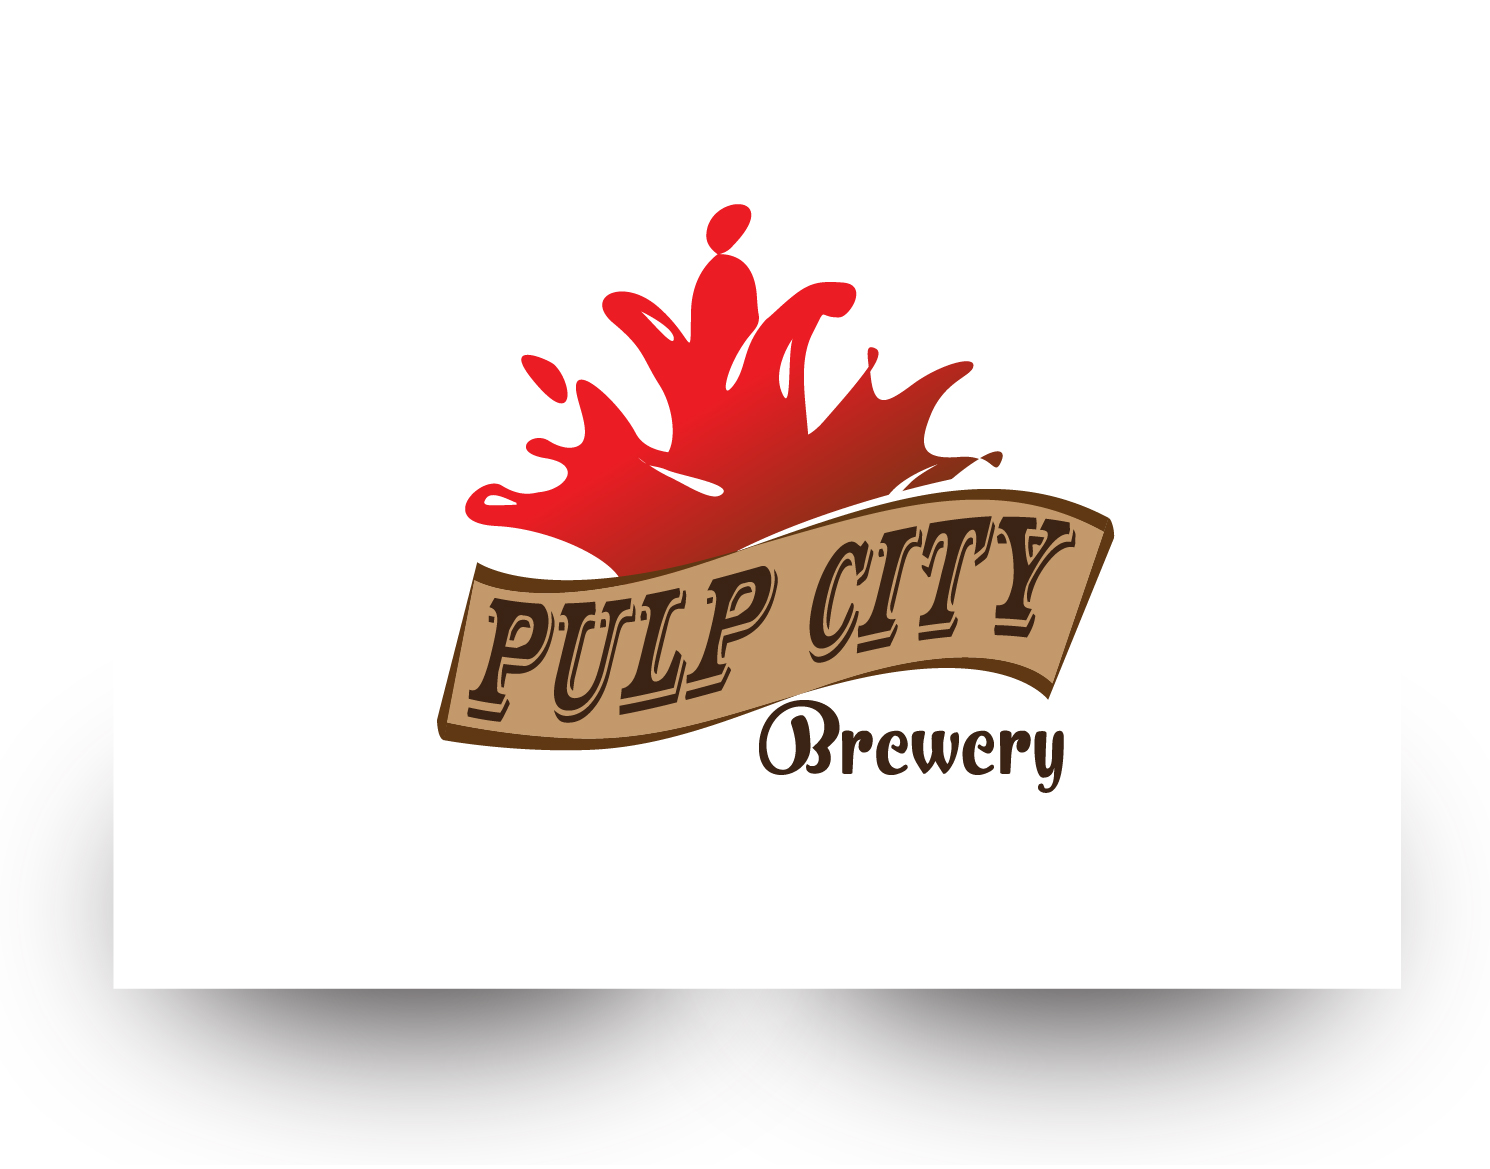 Logo Design by demang - Entry No. 76 in the Logo Design Contest Artistic Logo Design for Pulp City Brewery.